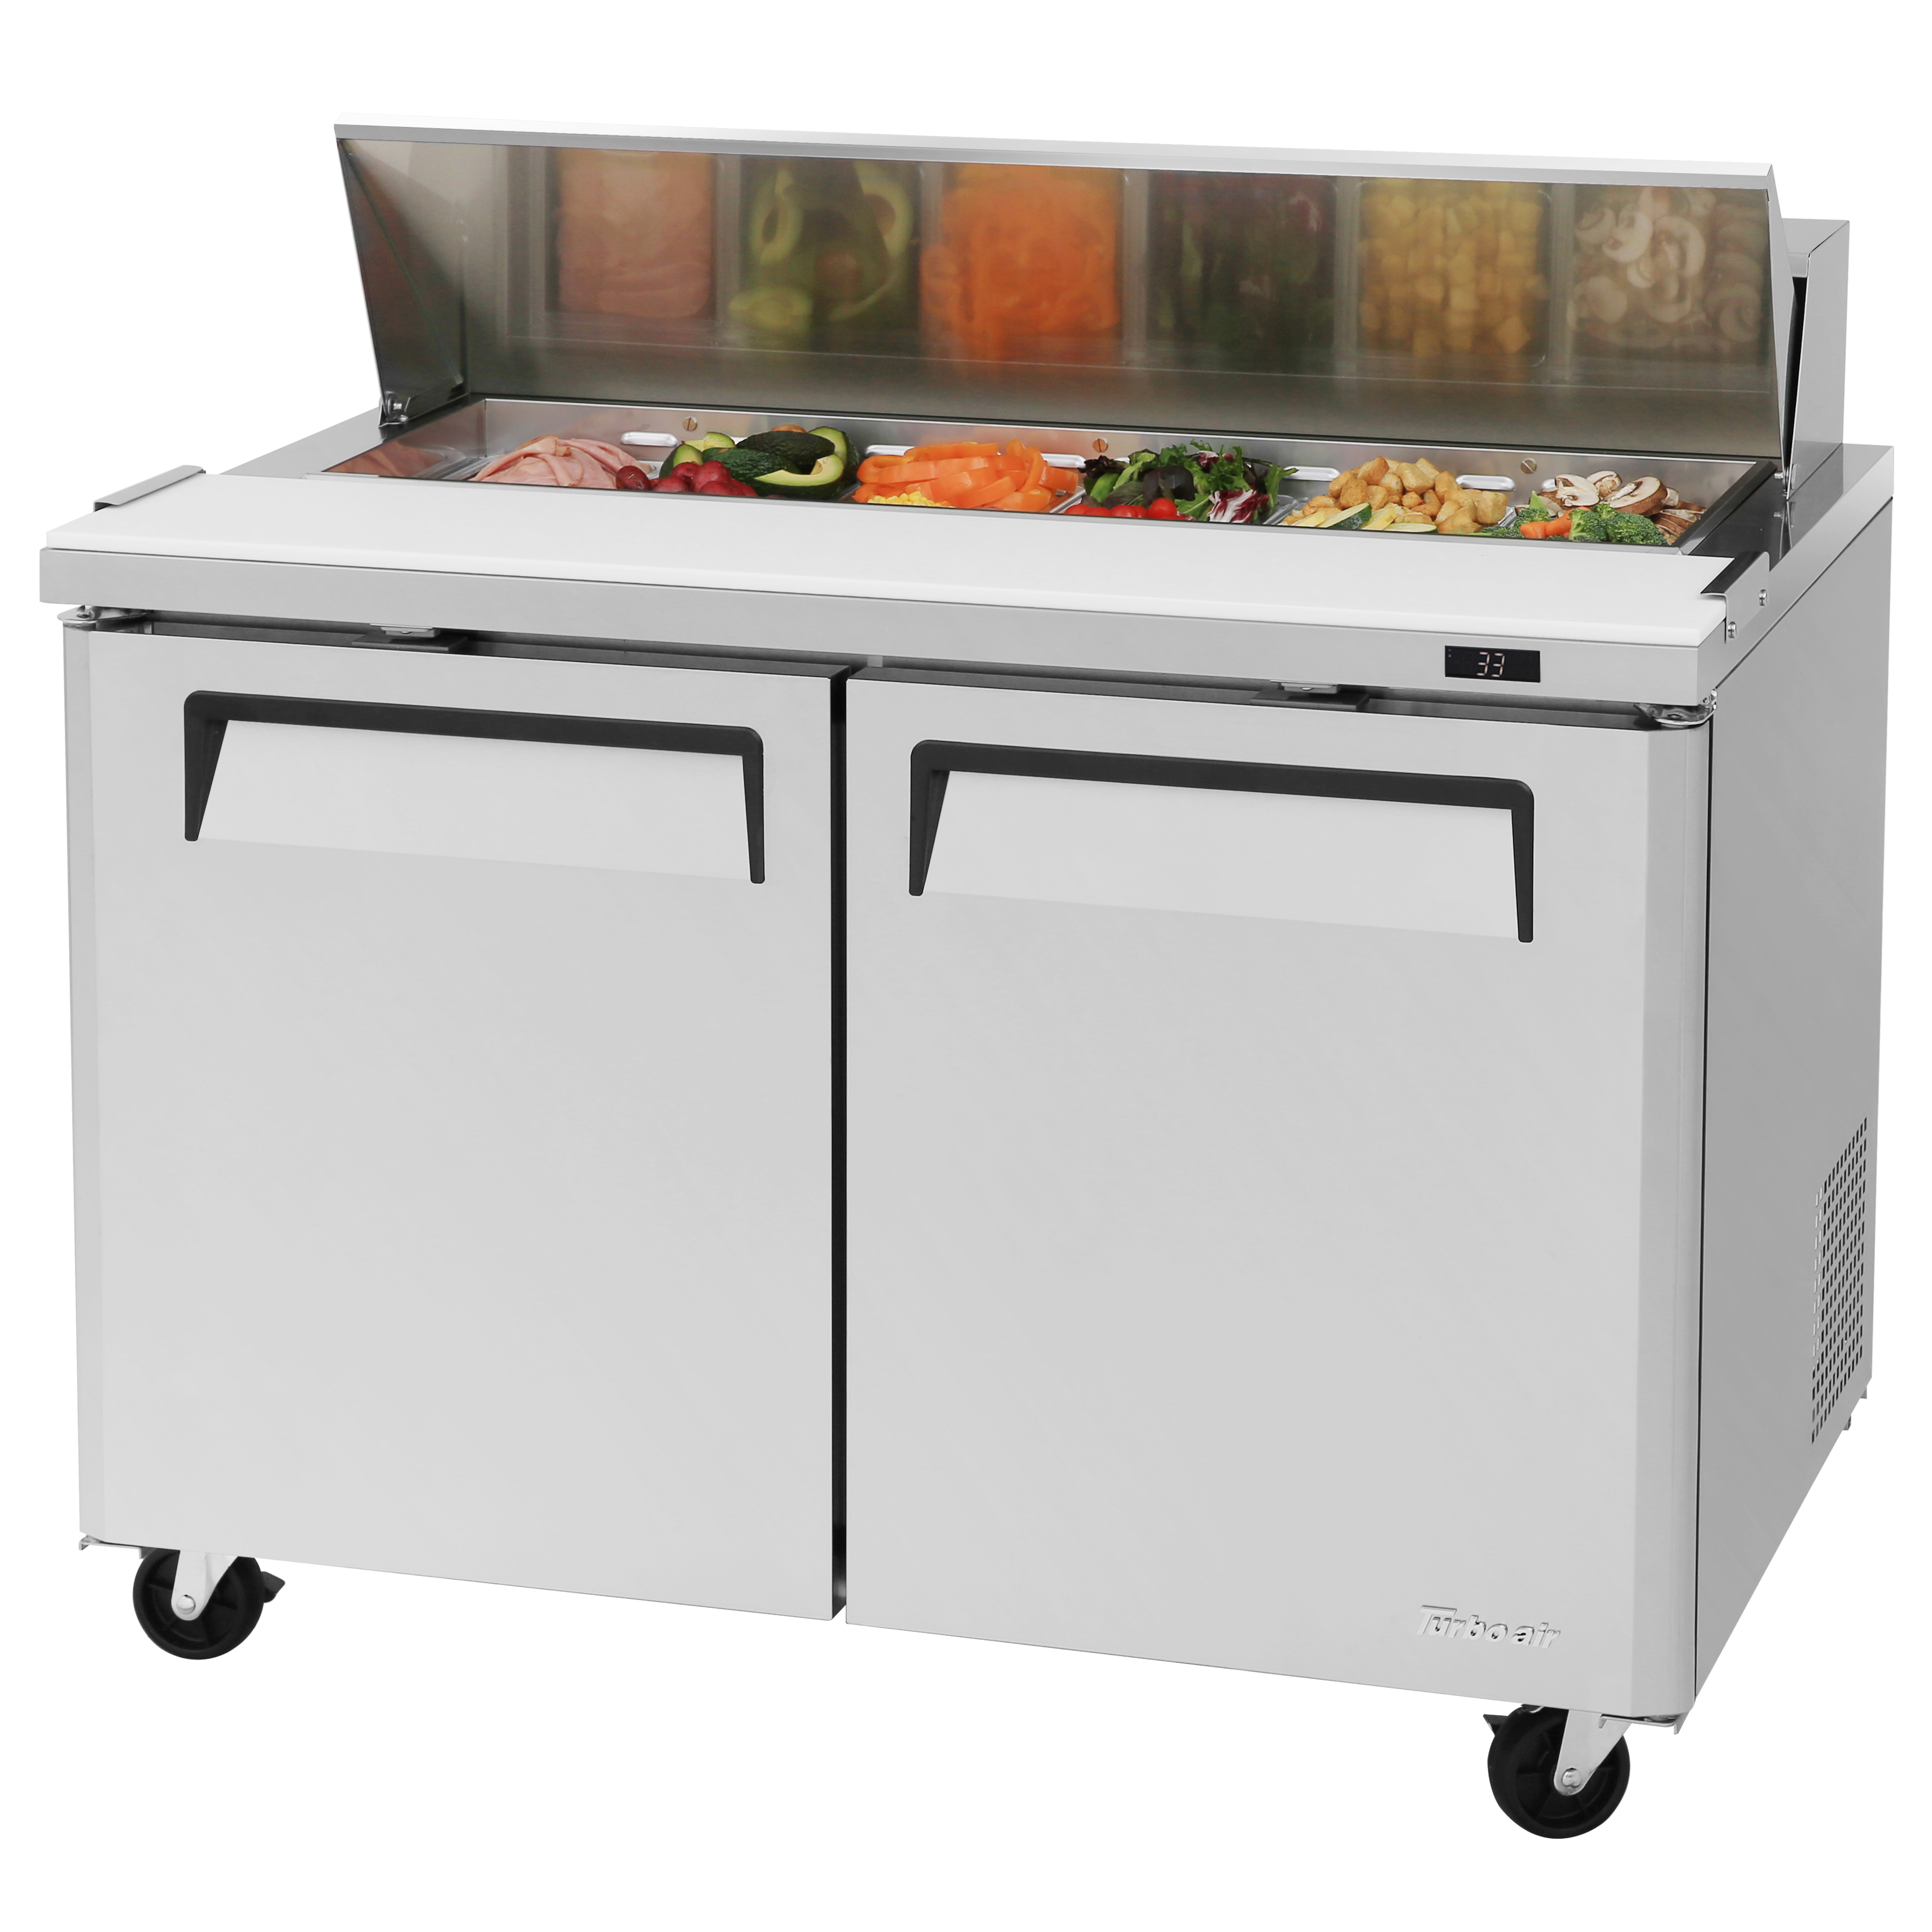 Turbo Air MST-48-N refrigerated counter, sandwich / salad unit